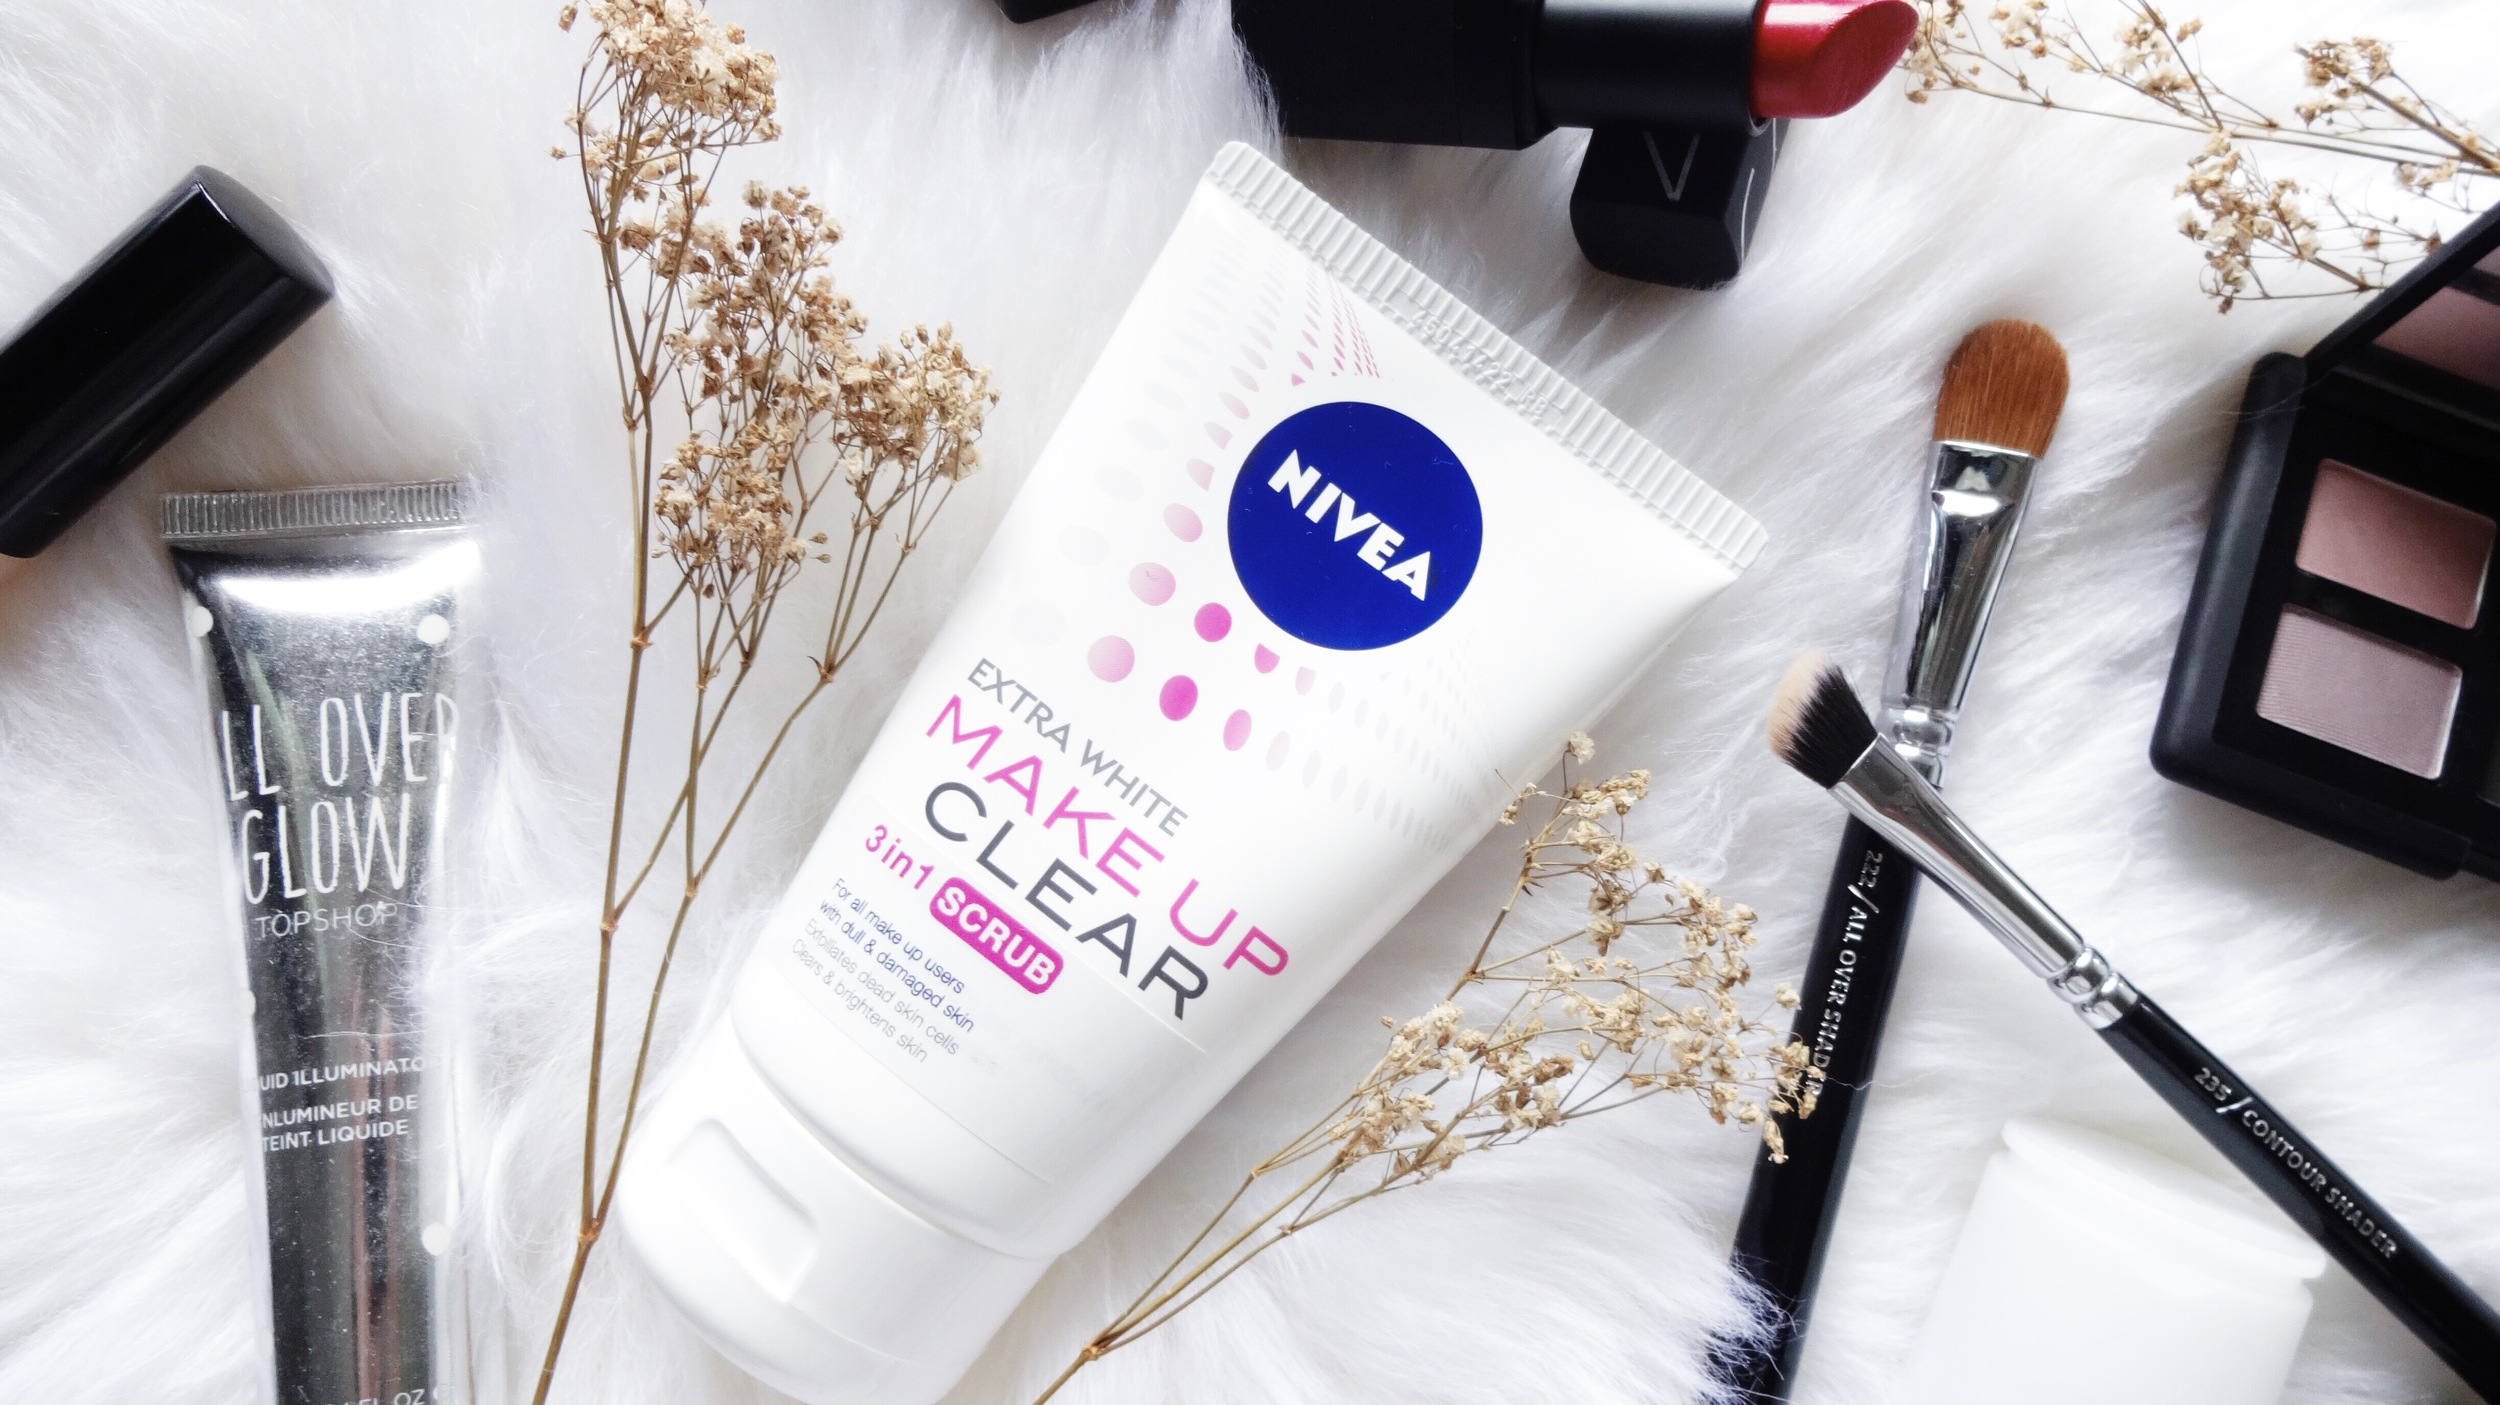 NIVEA Make Up Clear 3-in-1 Scrub